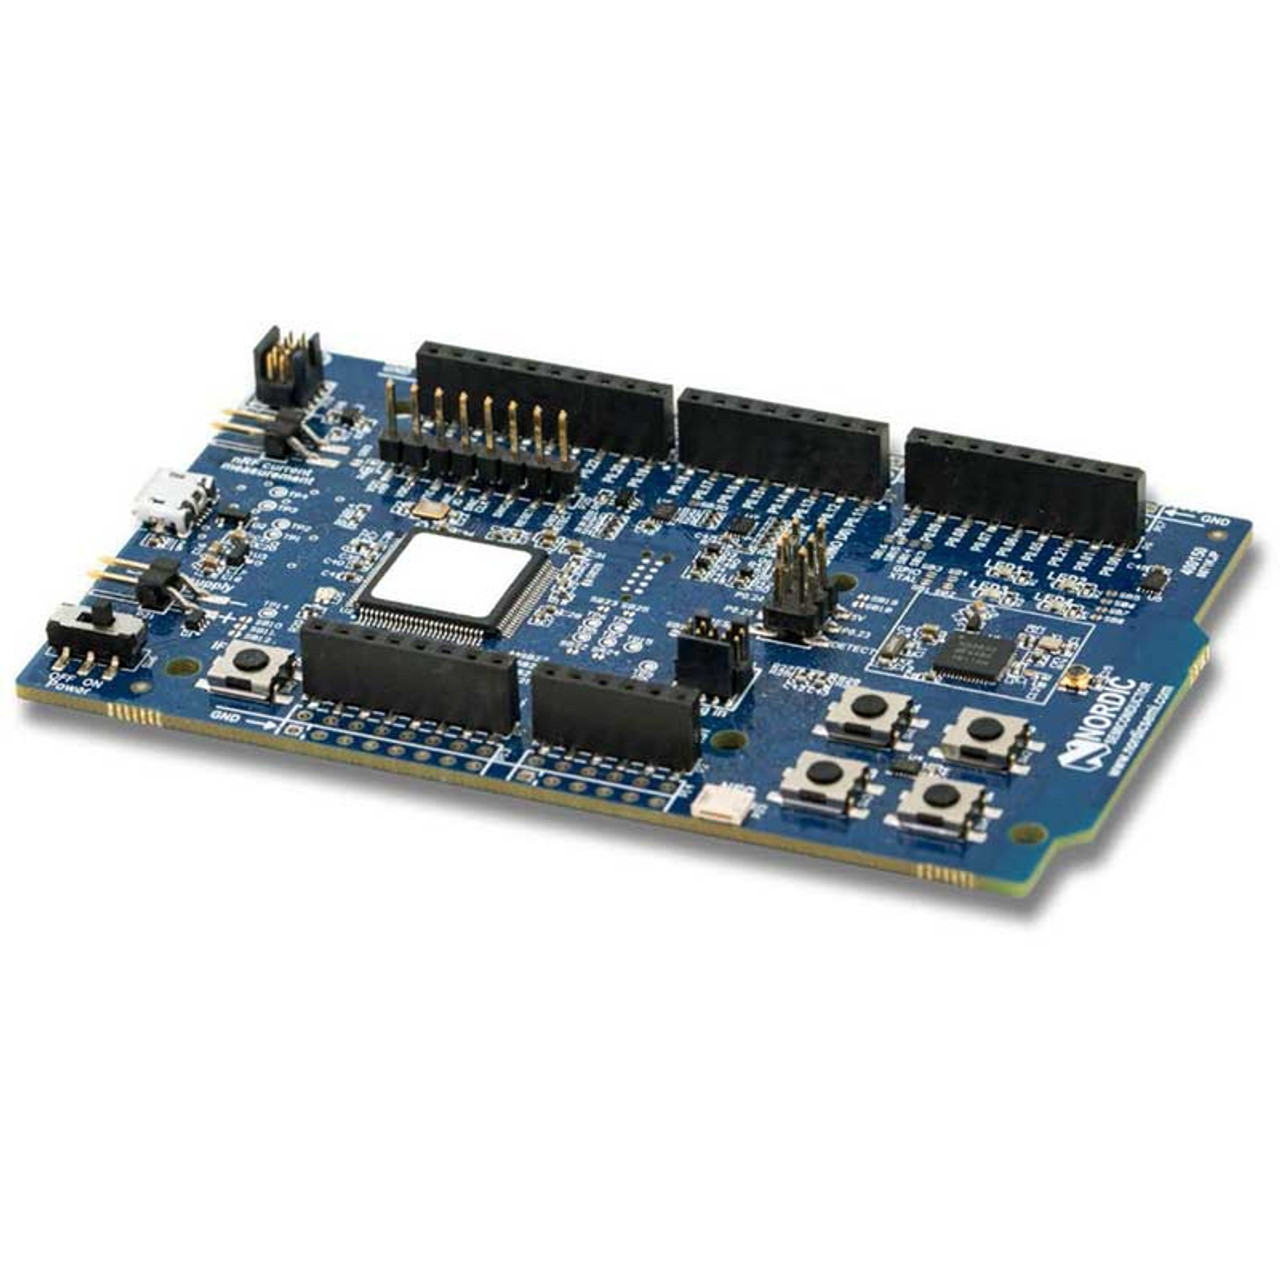 NRF52-DK Bluetooth 5 and Bluetooth mesh Development Kit (Arduino Uno  Revision 3 compatible)